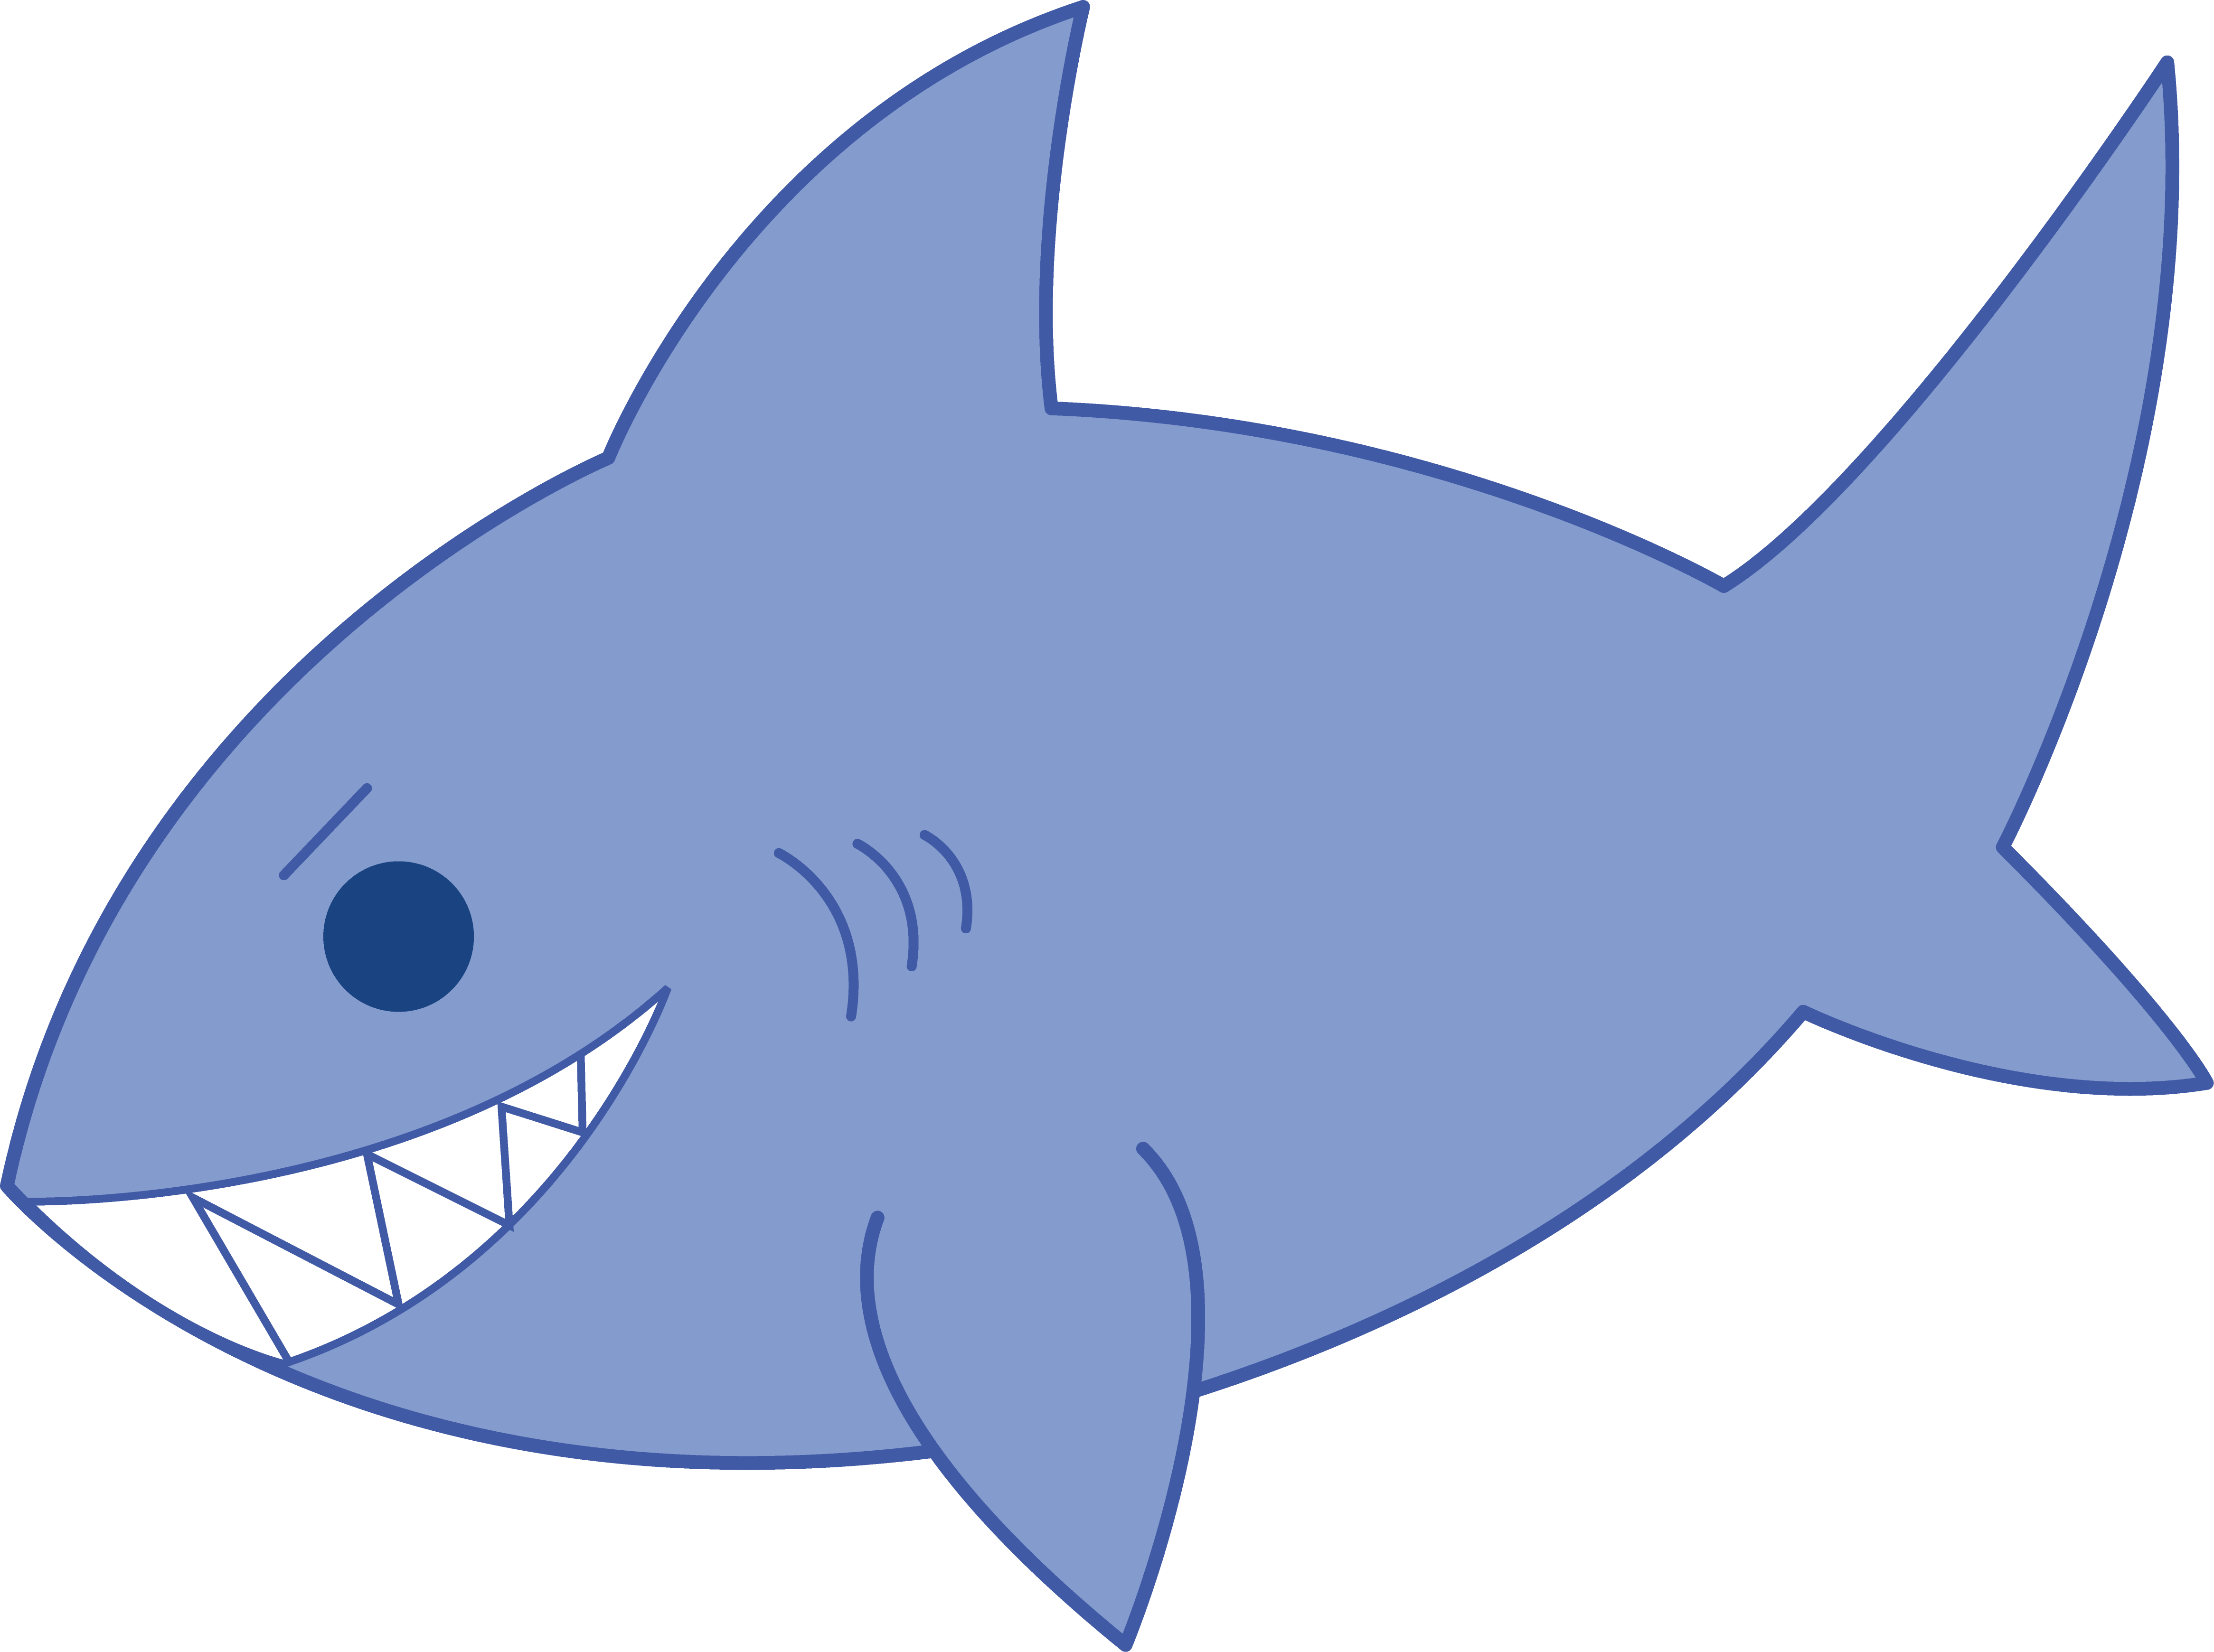 Sharl fish clipart picture freeuse Shark cute fish clipart the cliparts - ClipartPost picture freeuse